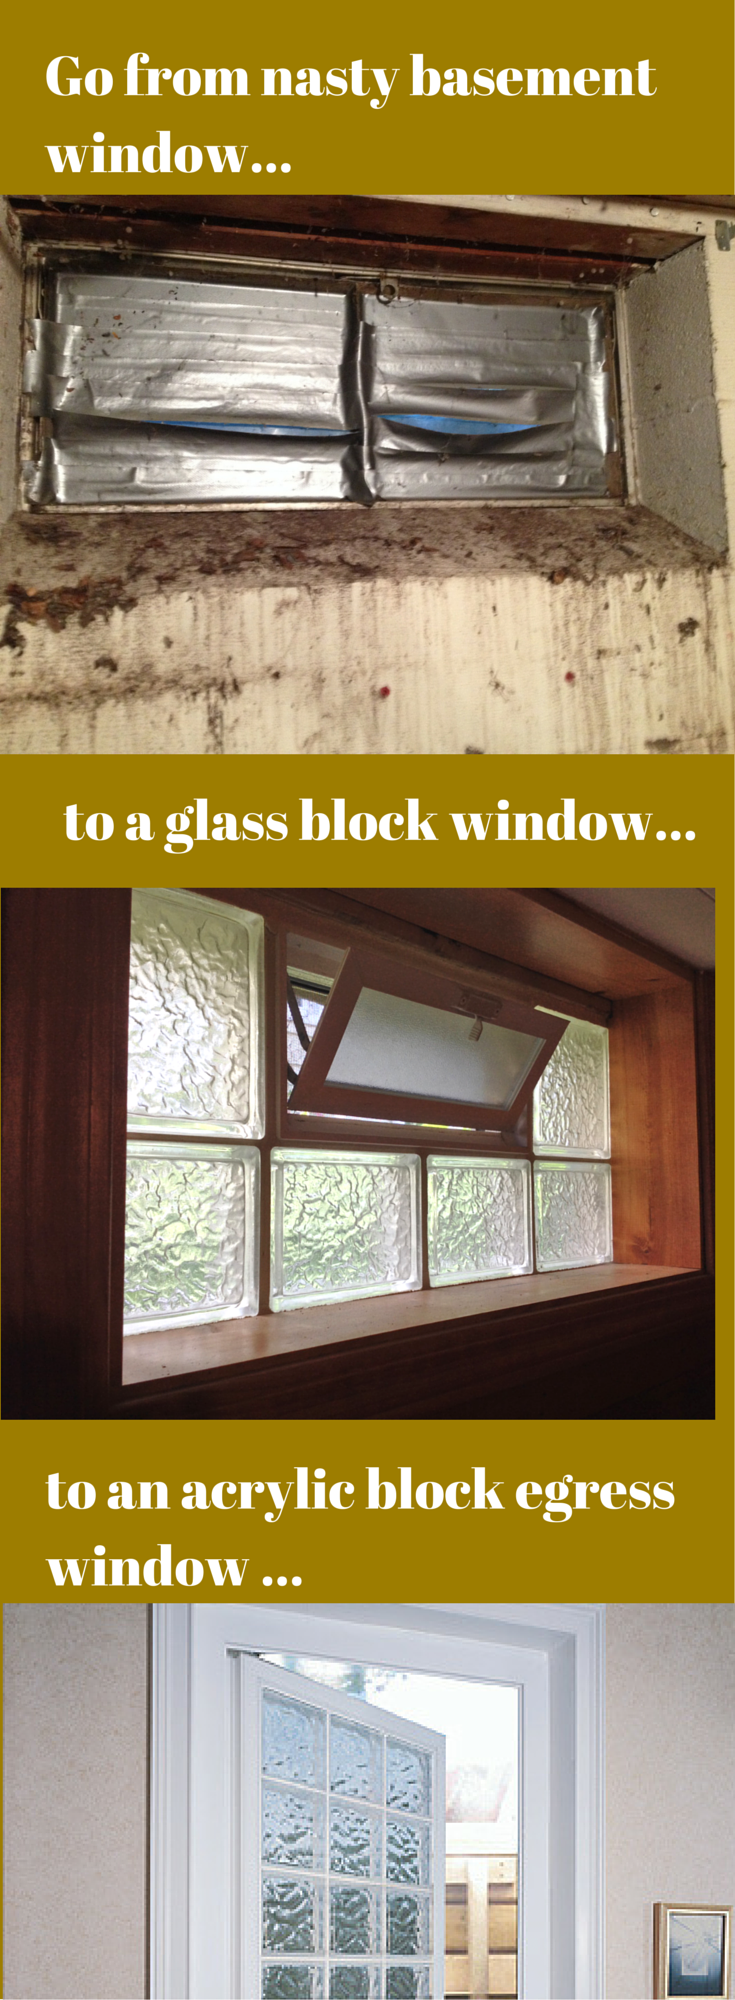 How To Fix The Top 5 Basement Window Problems Basement Windows Glass Block Windows Basement Makeover